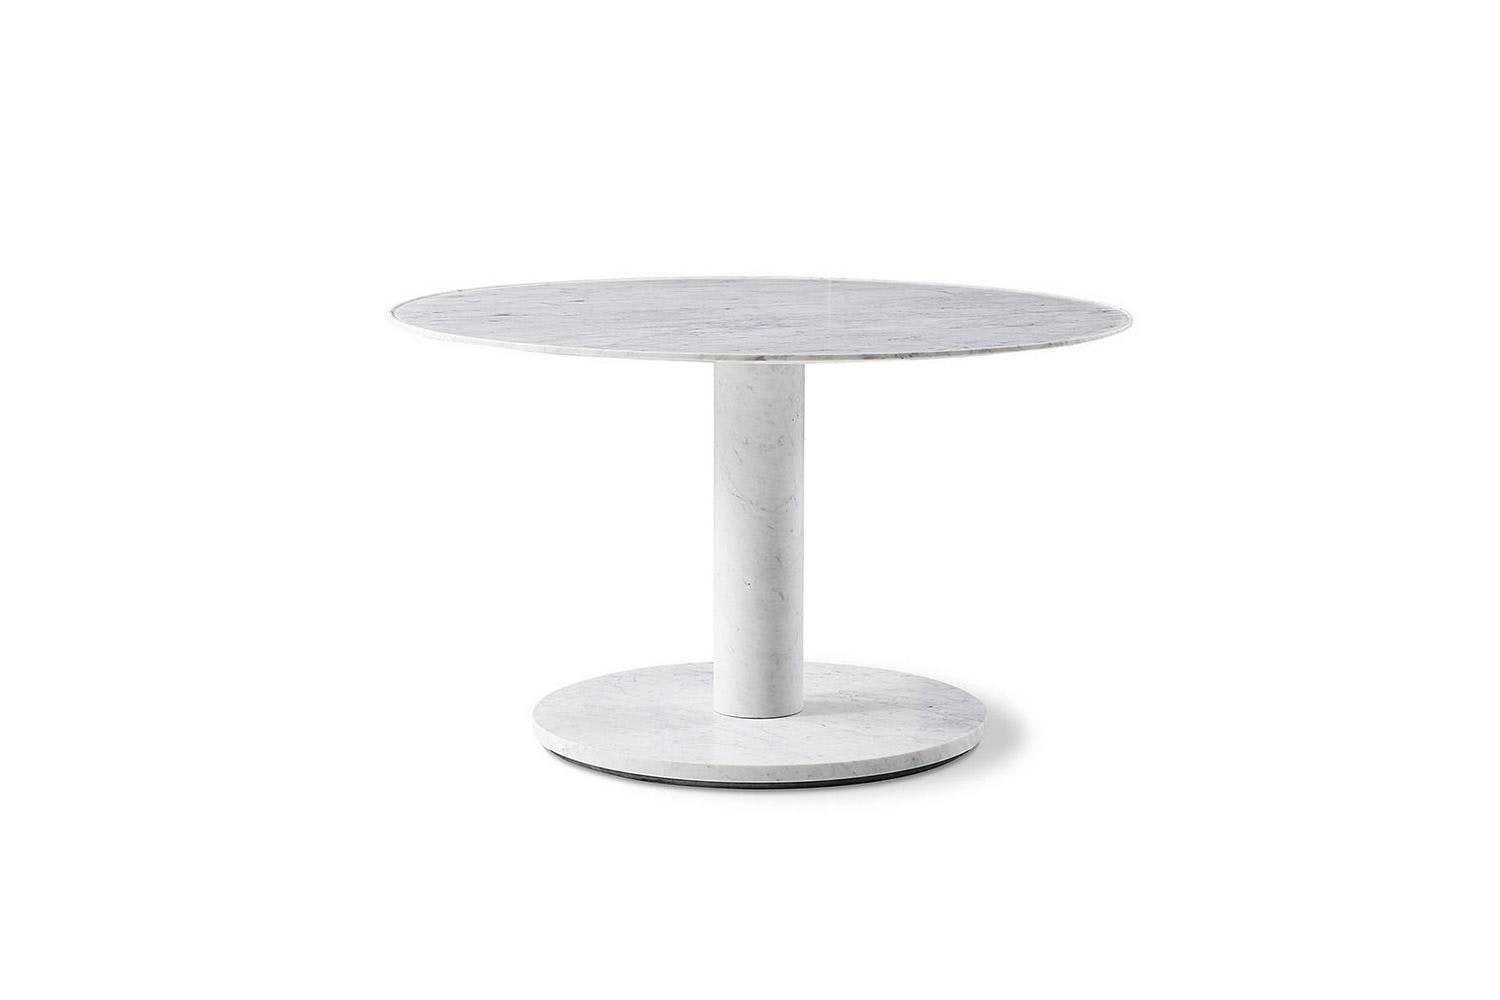 199 10 Table by Piero Lissoni for Cassina